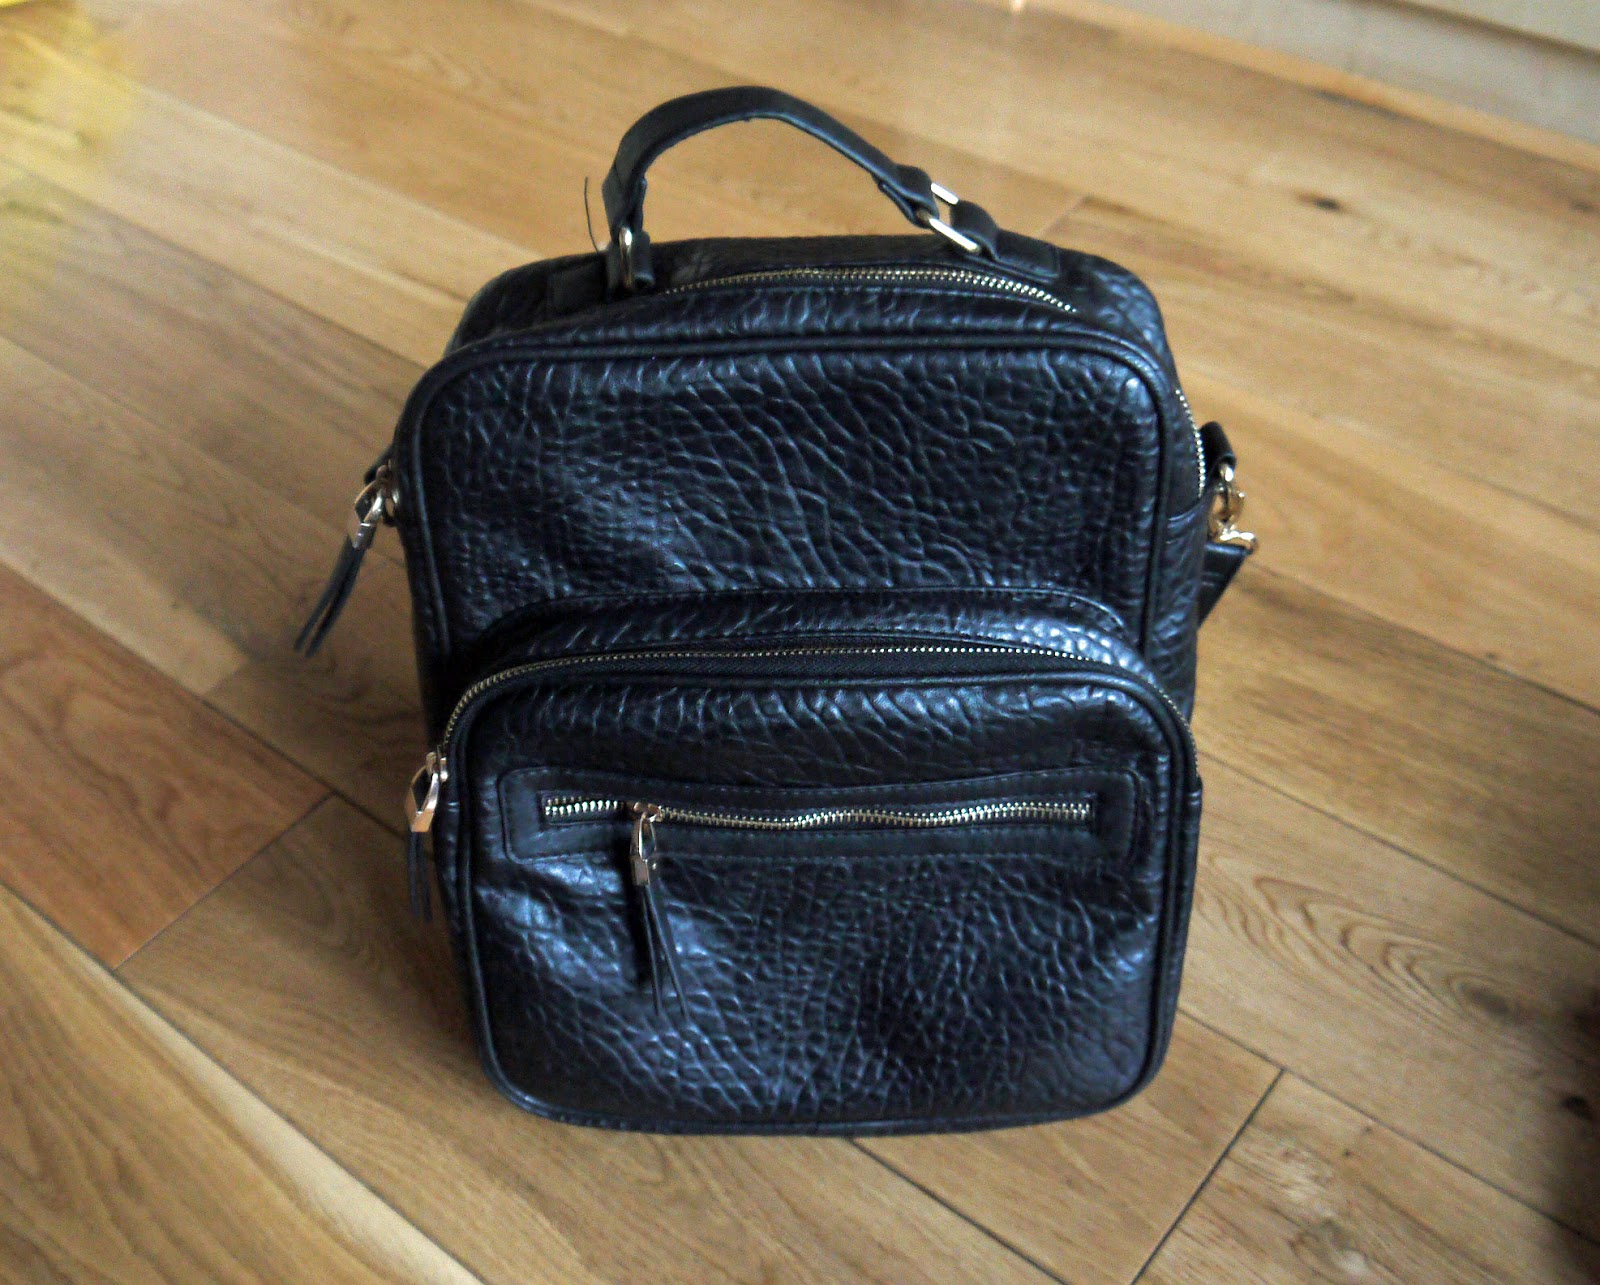 New Look Black Textured Leather-Look Backpack